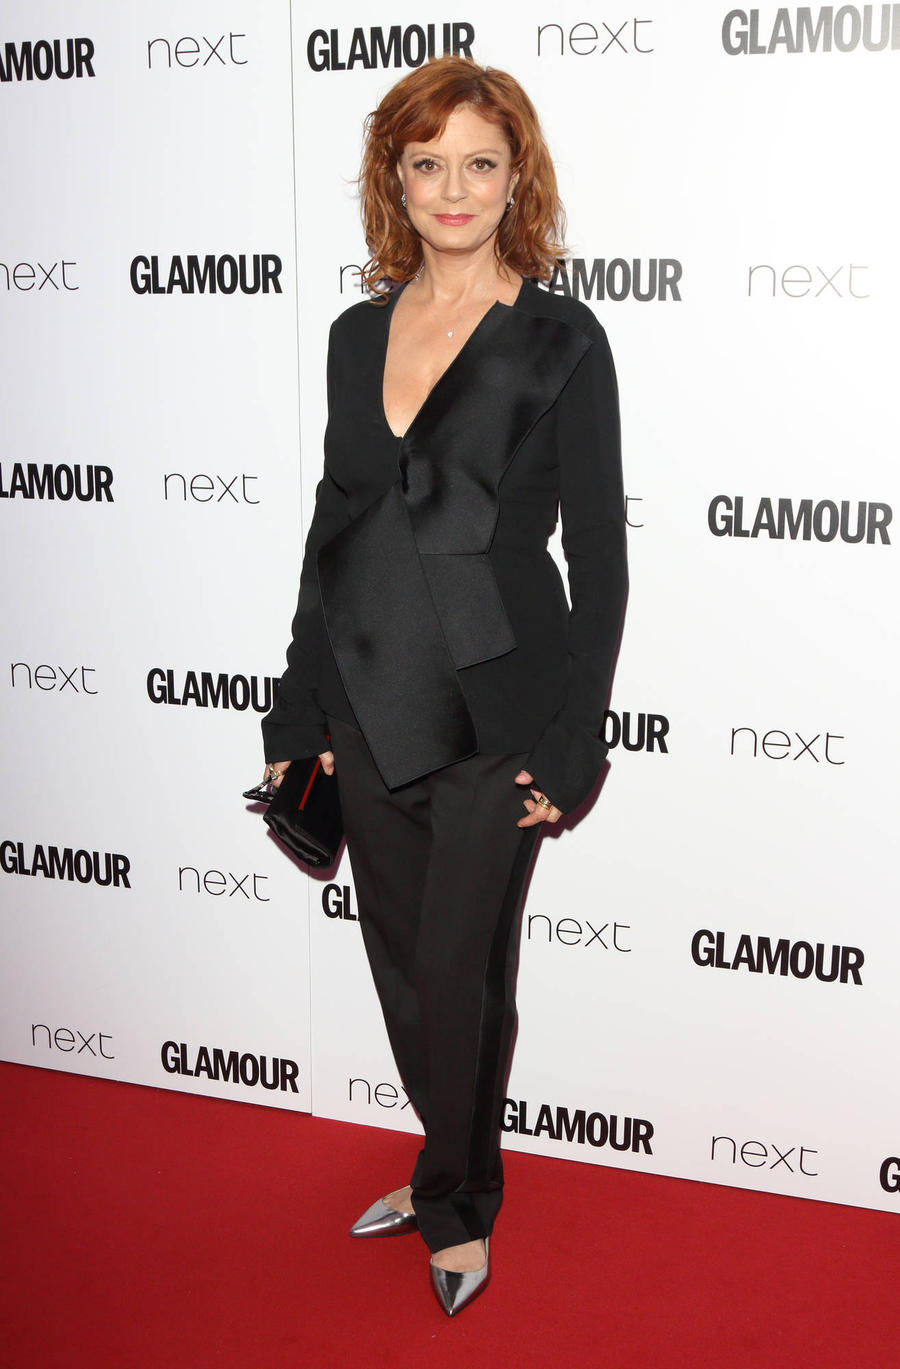 Susan Sarandon And Sigourney Weaver Win Top Glamour Awards